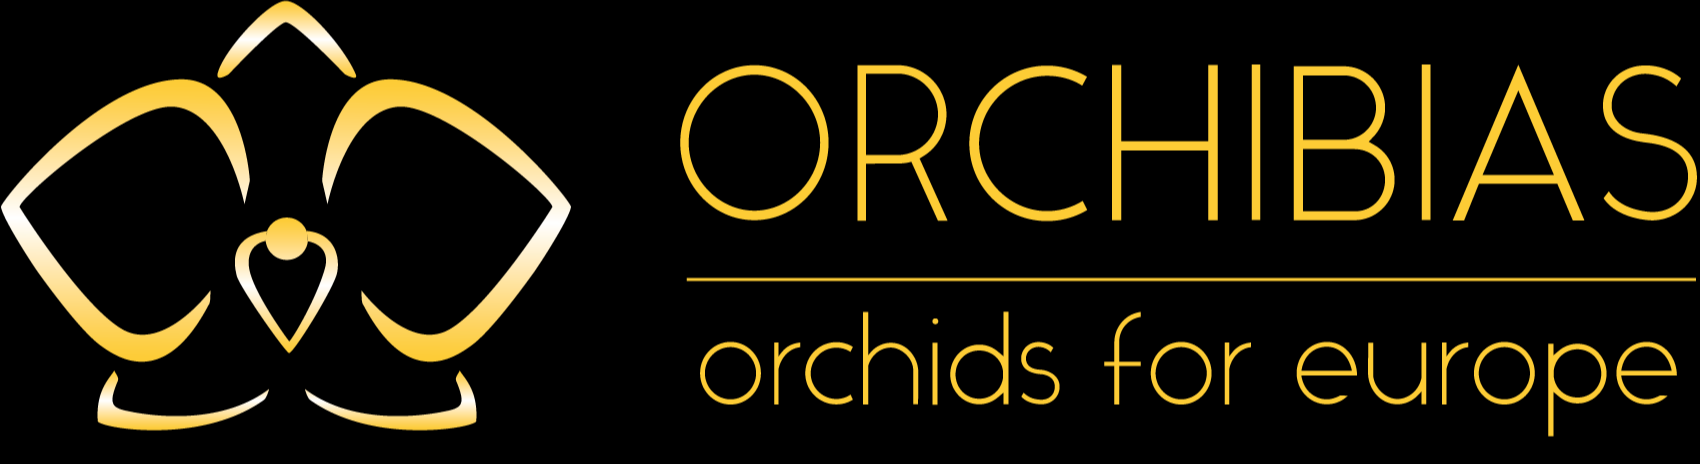 Orchibias - Orchids for Europe